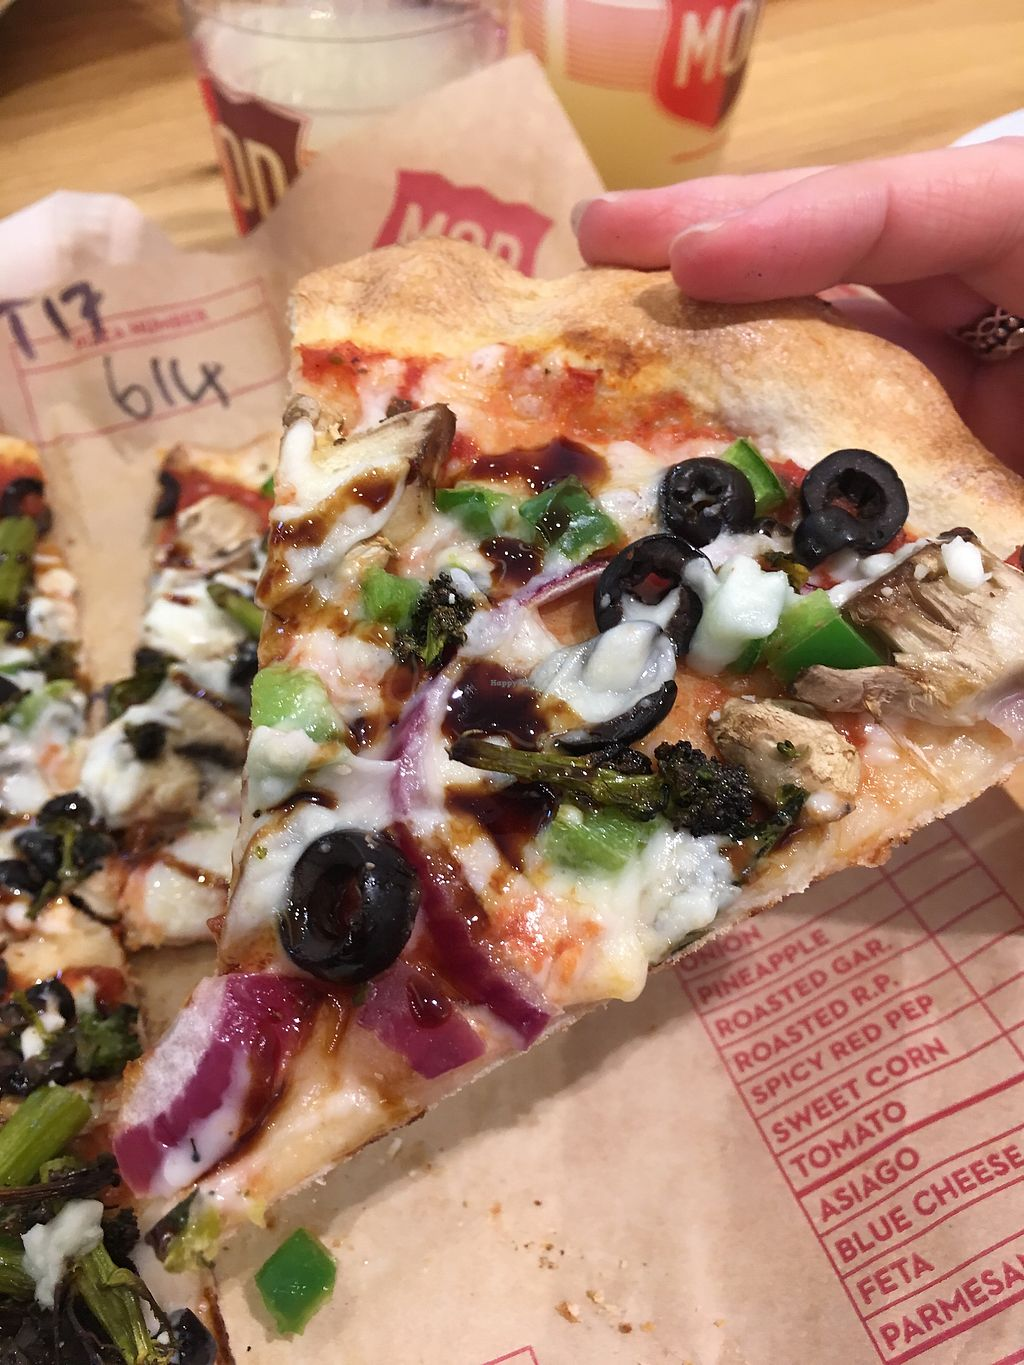 """Photo of Mod Pizza  by <a href=""""/members/profile/SamanthaParkin"""">SamanthaParkin</a> <br/>Vegan pizza  <br/> April 6, 2018  - <a href='/contact/abuse/image/87204/381478'>Report</a>"""